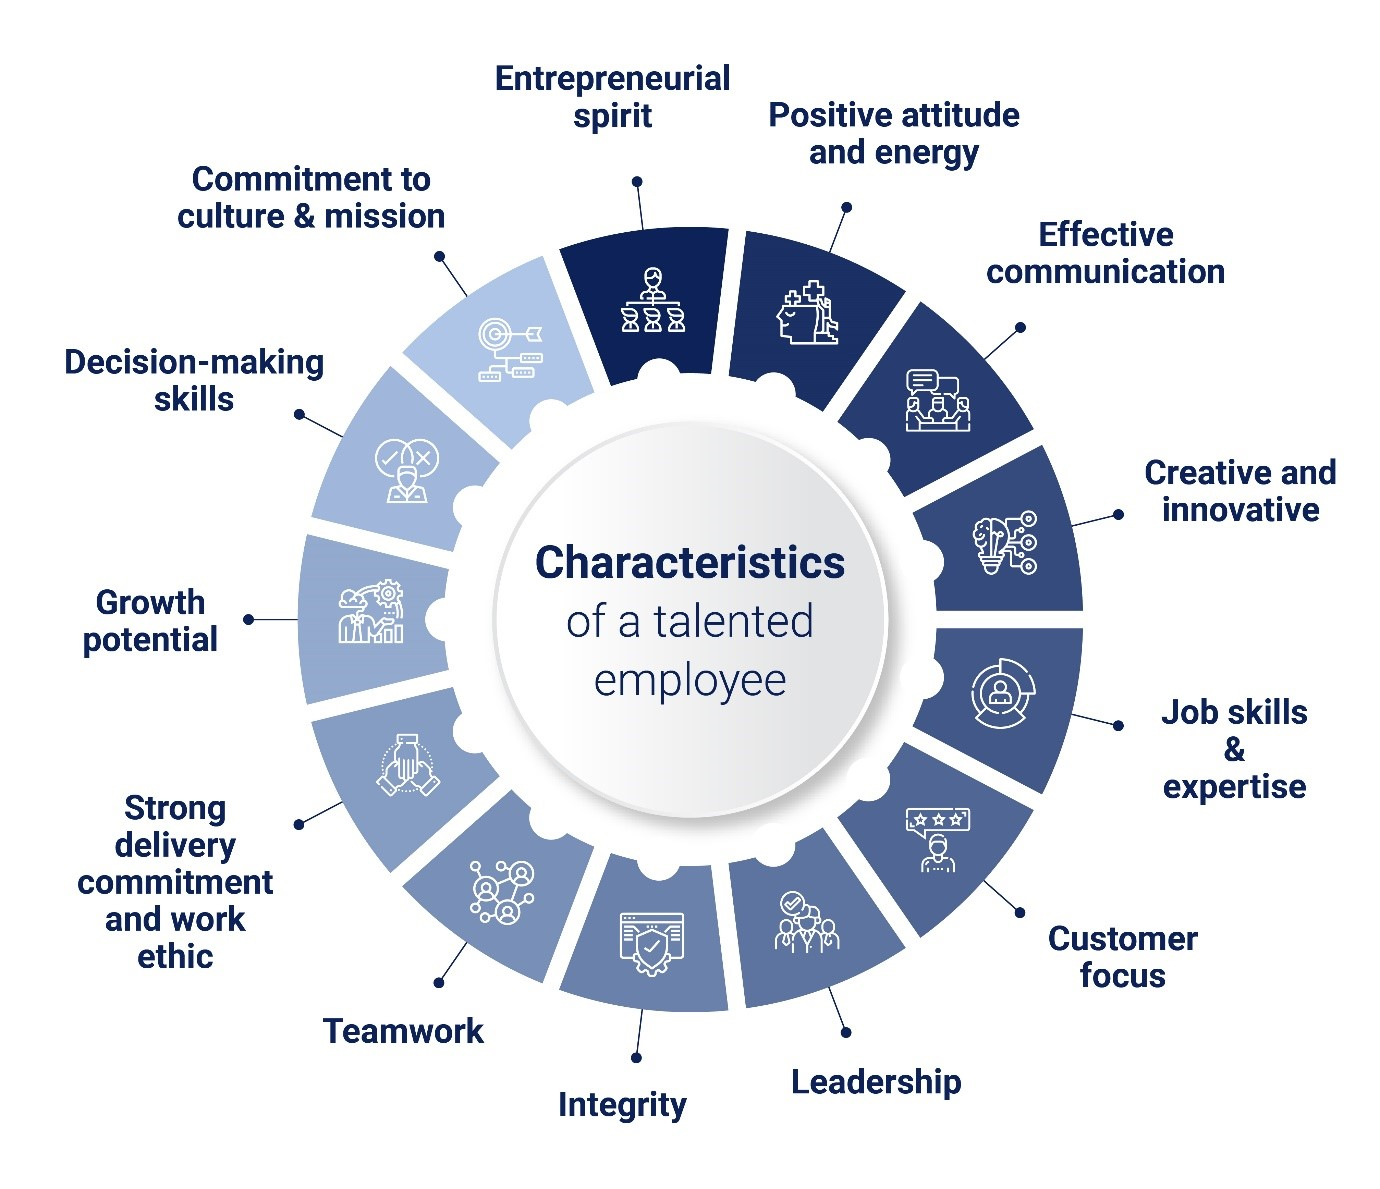 Characteristics of a talented employee